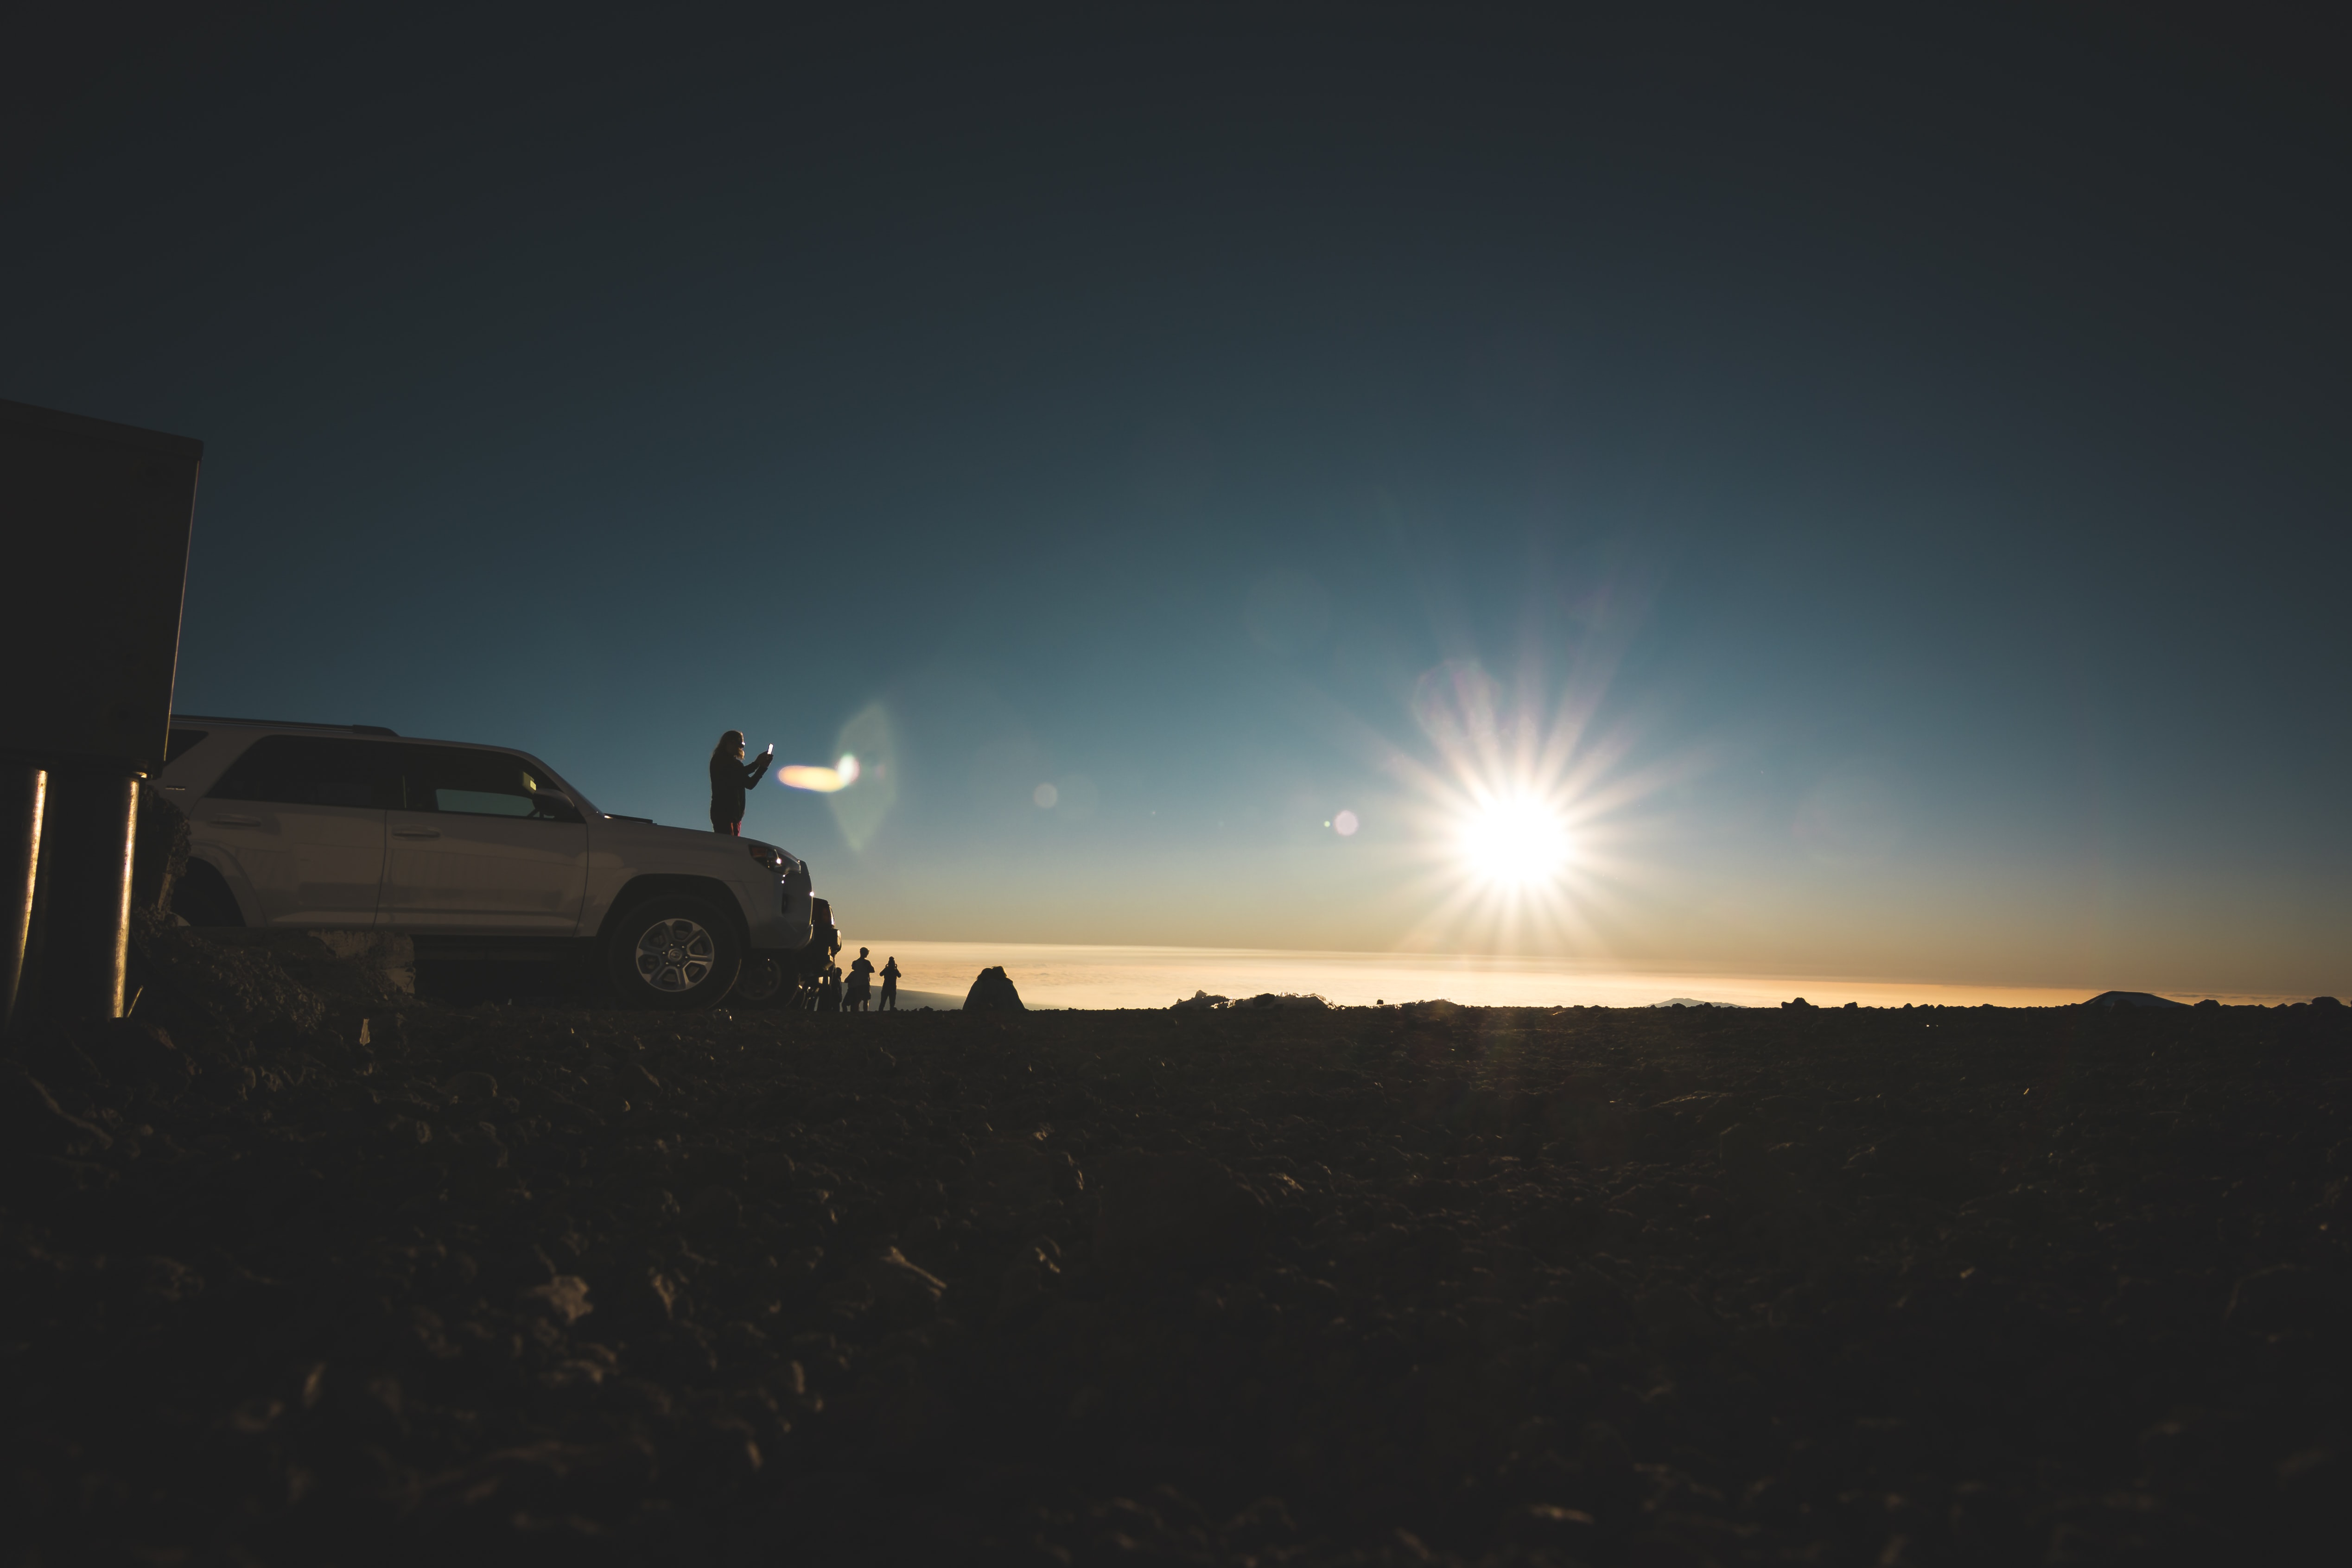 white car parked during sunset